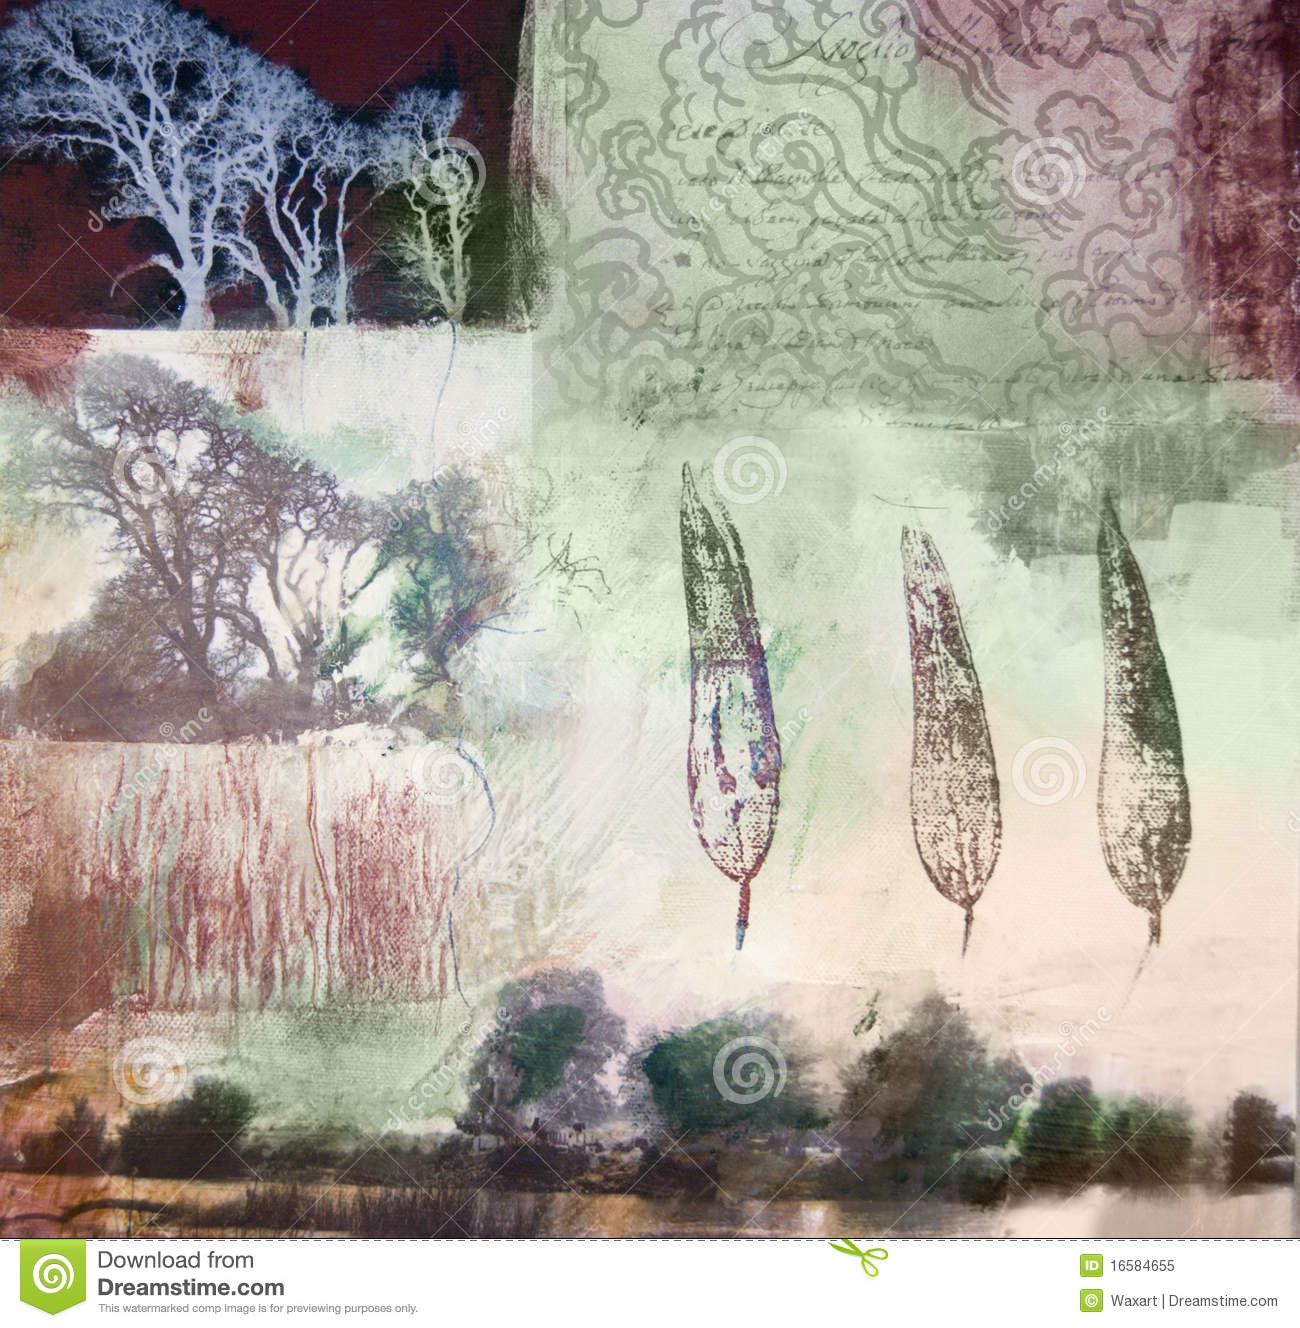 Mixed media painting of trees and leaves